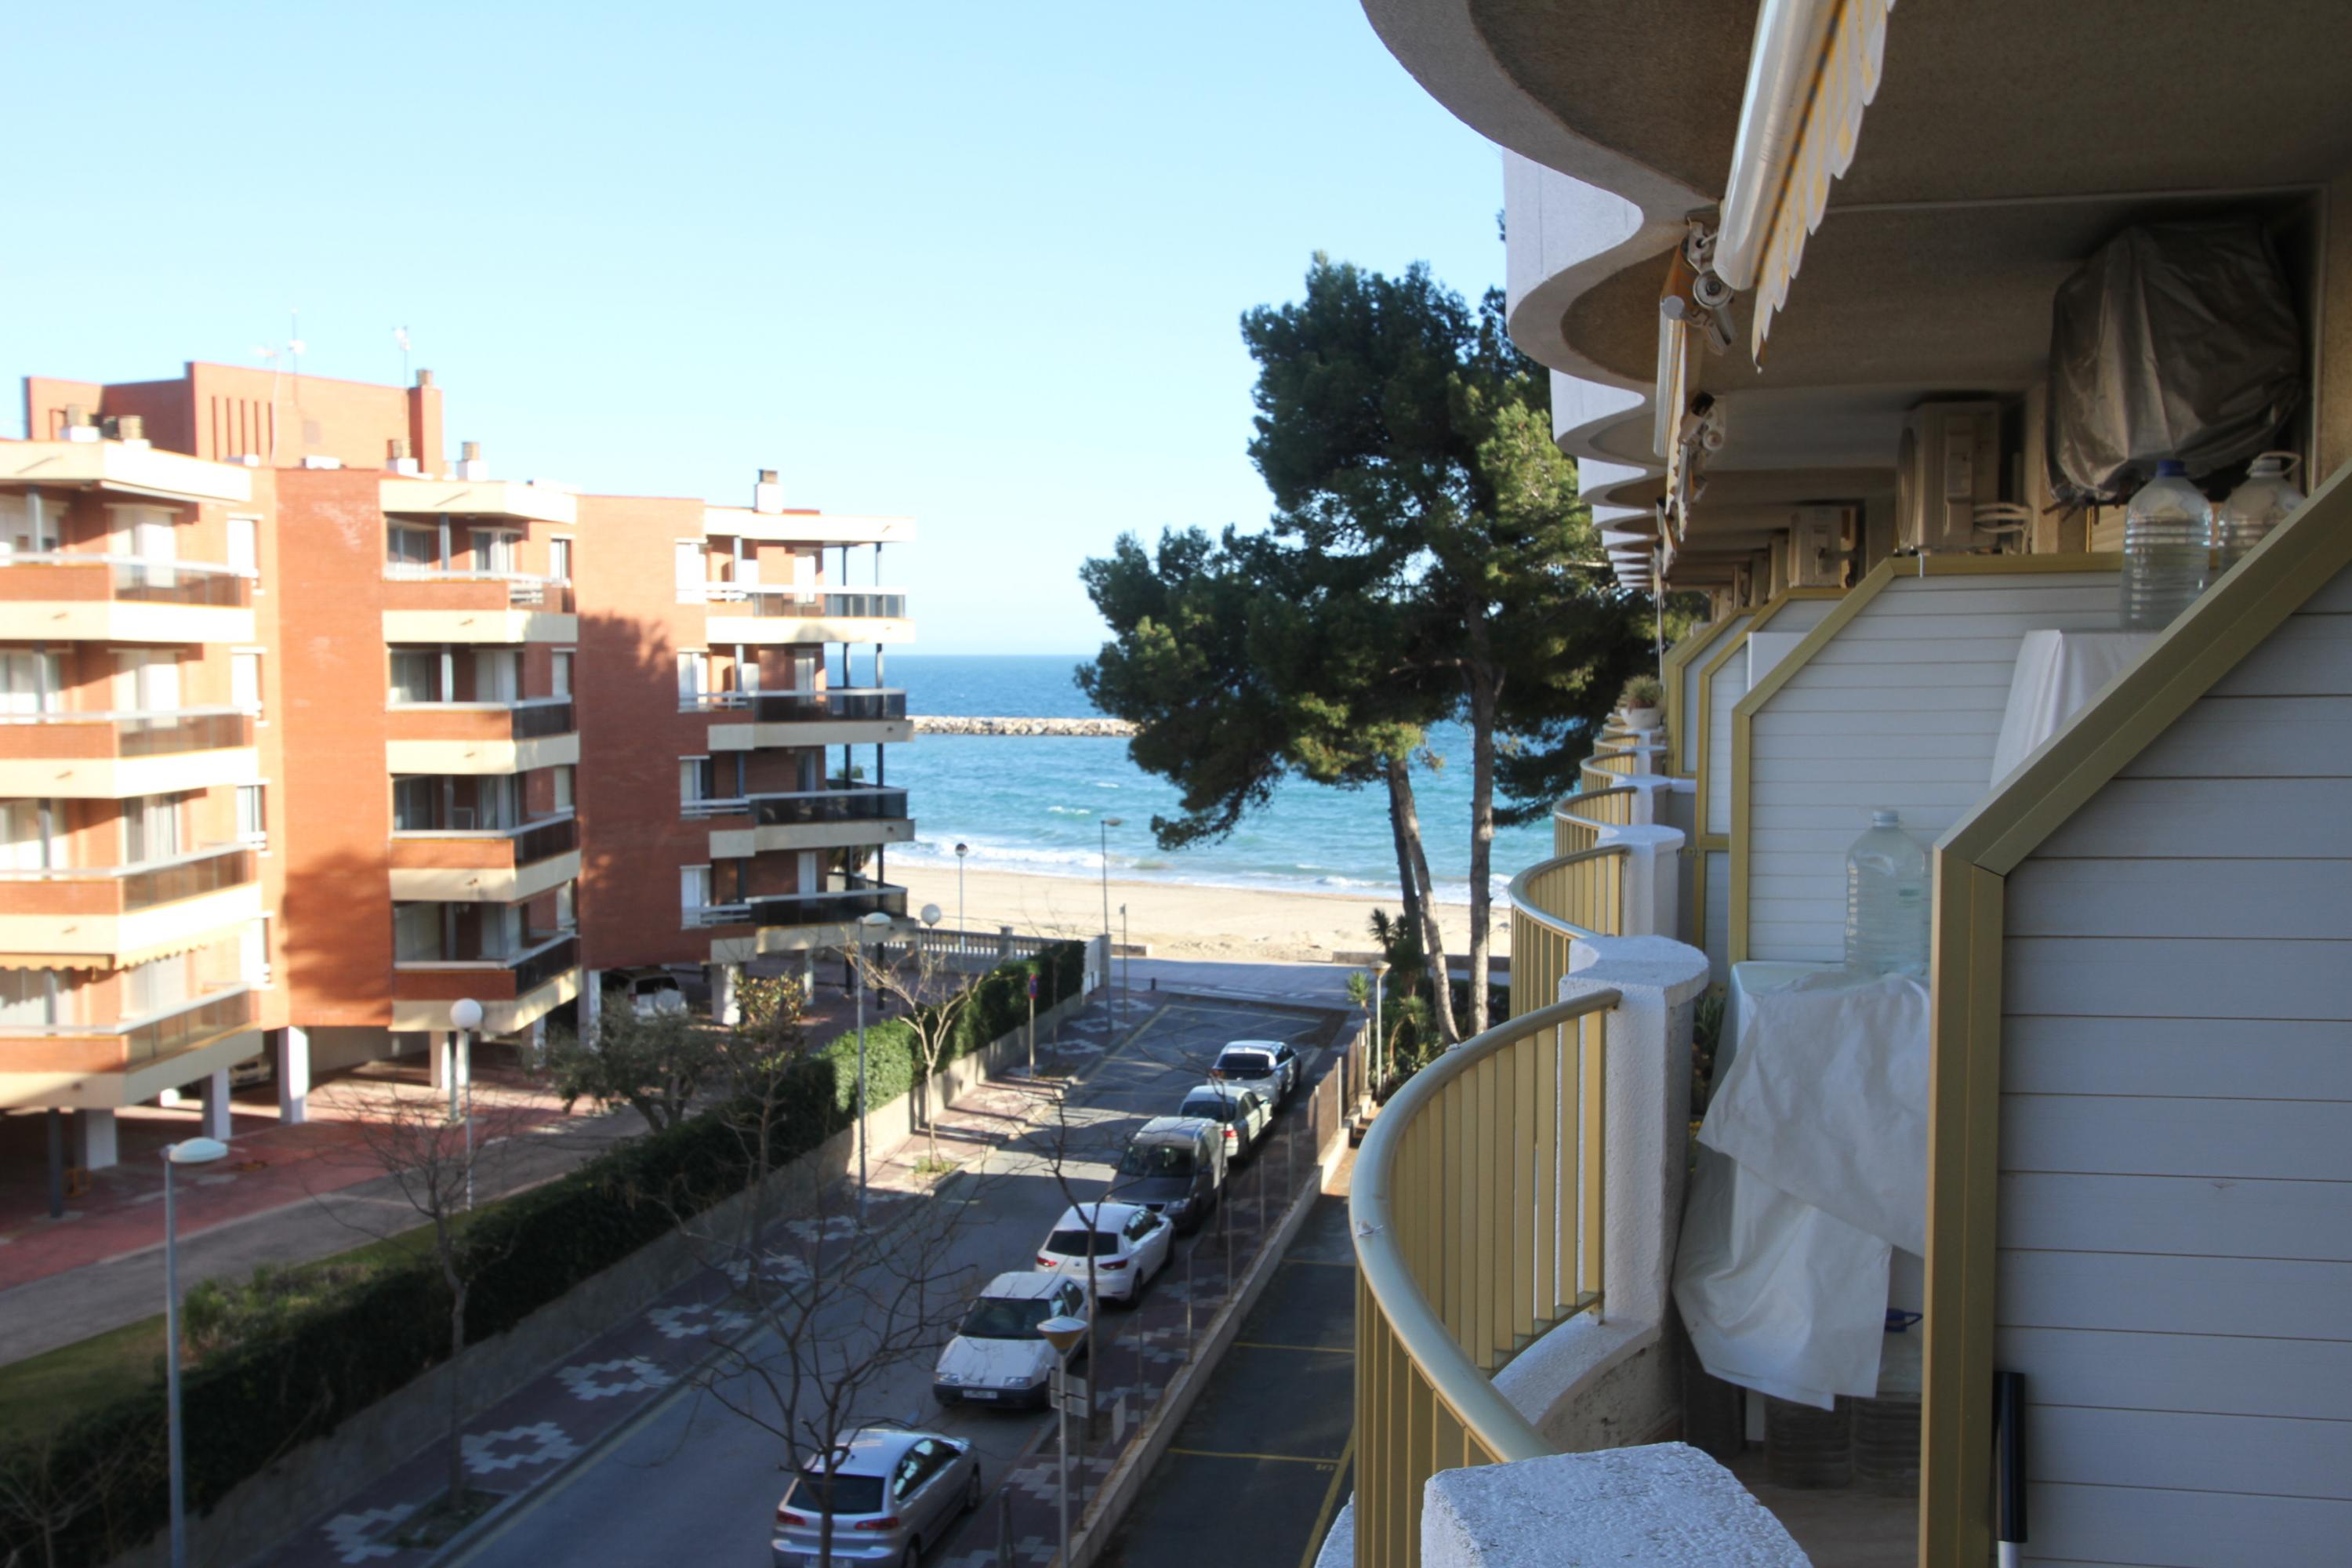 CB224 CB224 INTERNACIONAL Apartment  Cambrils